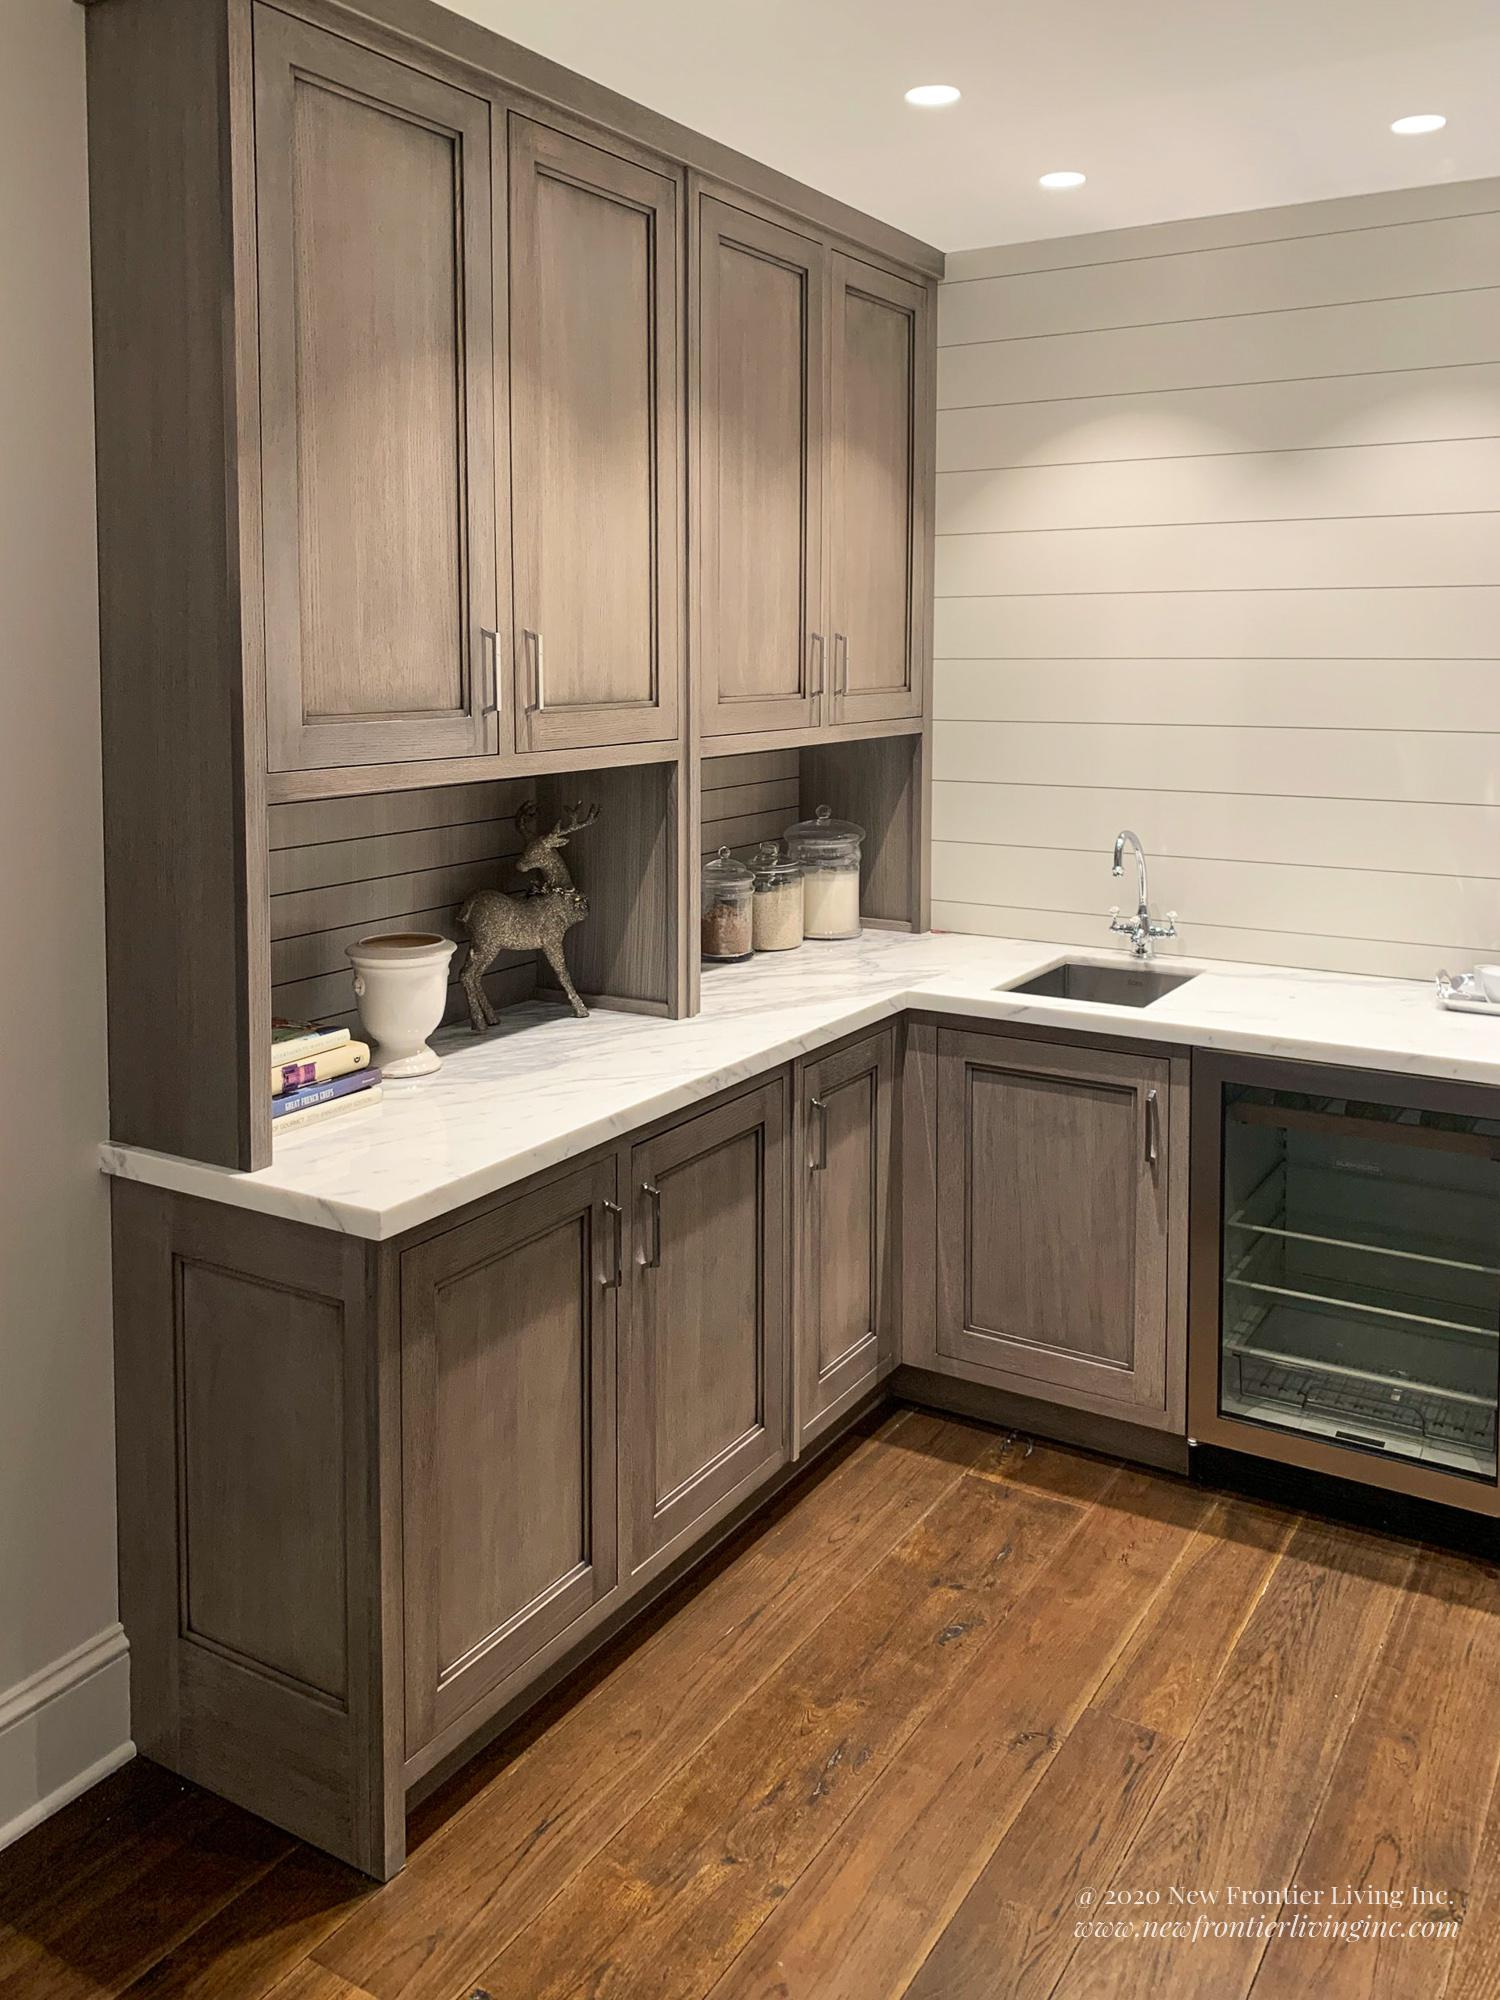 Matte finish traditional peach kitchen cabinetry